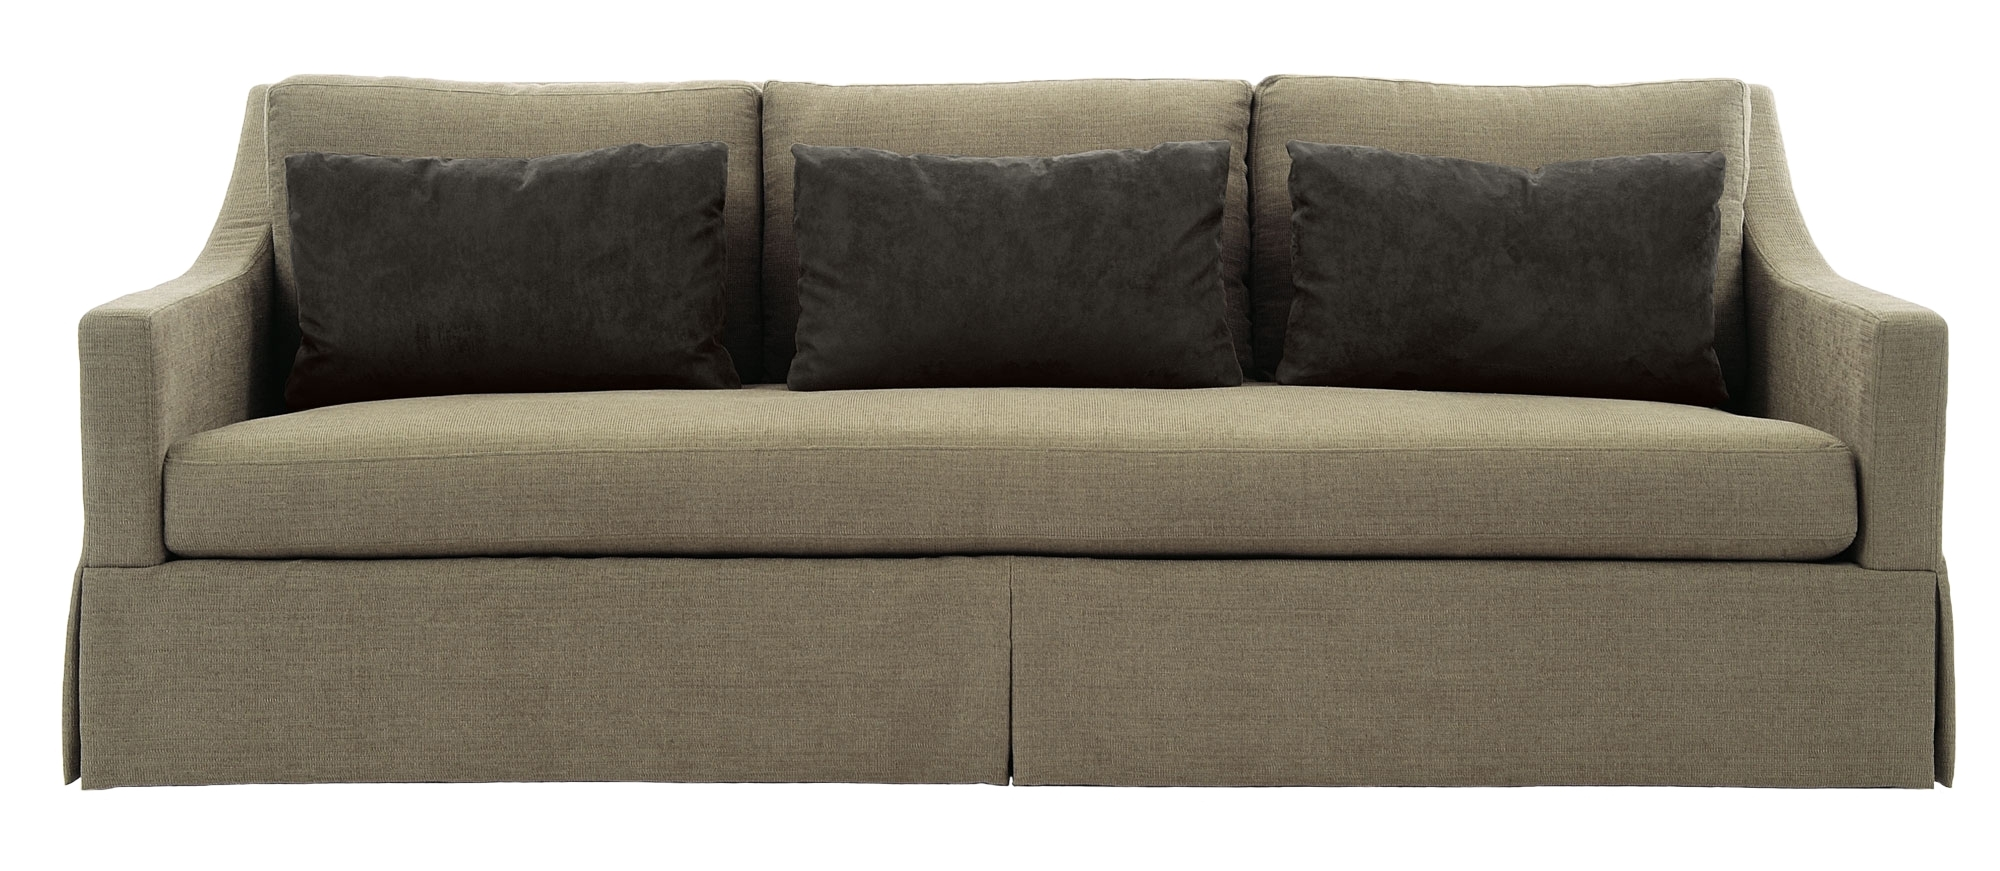 Bernhardt With Regard To Sofas And Loveseats (View 17 of 20)